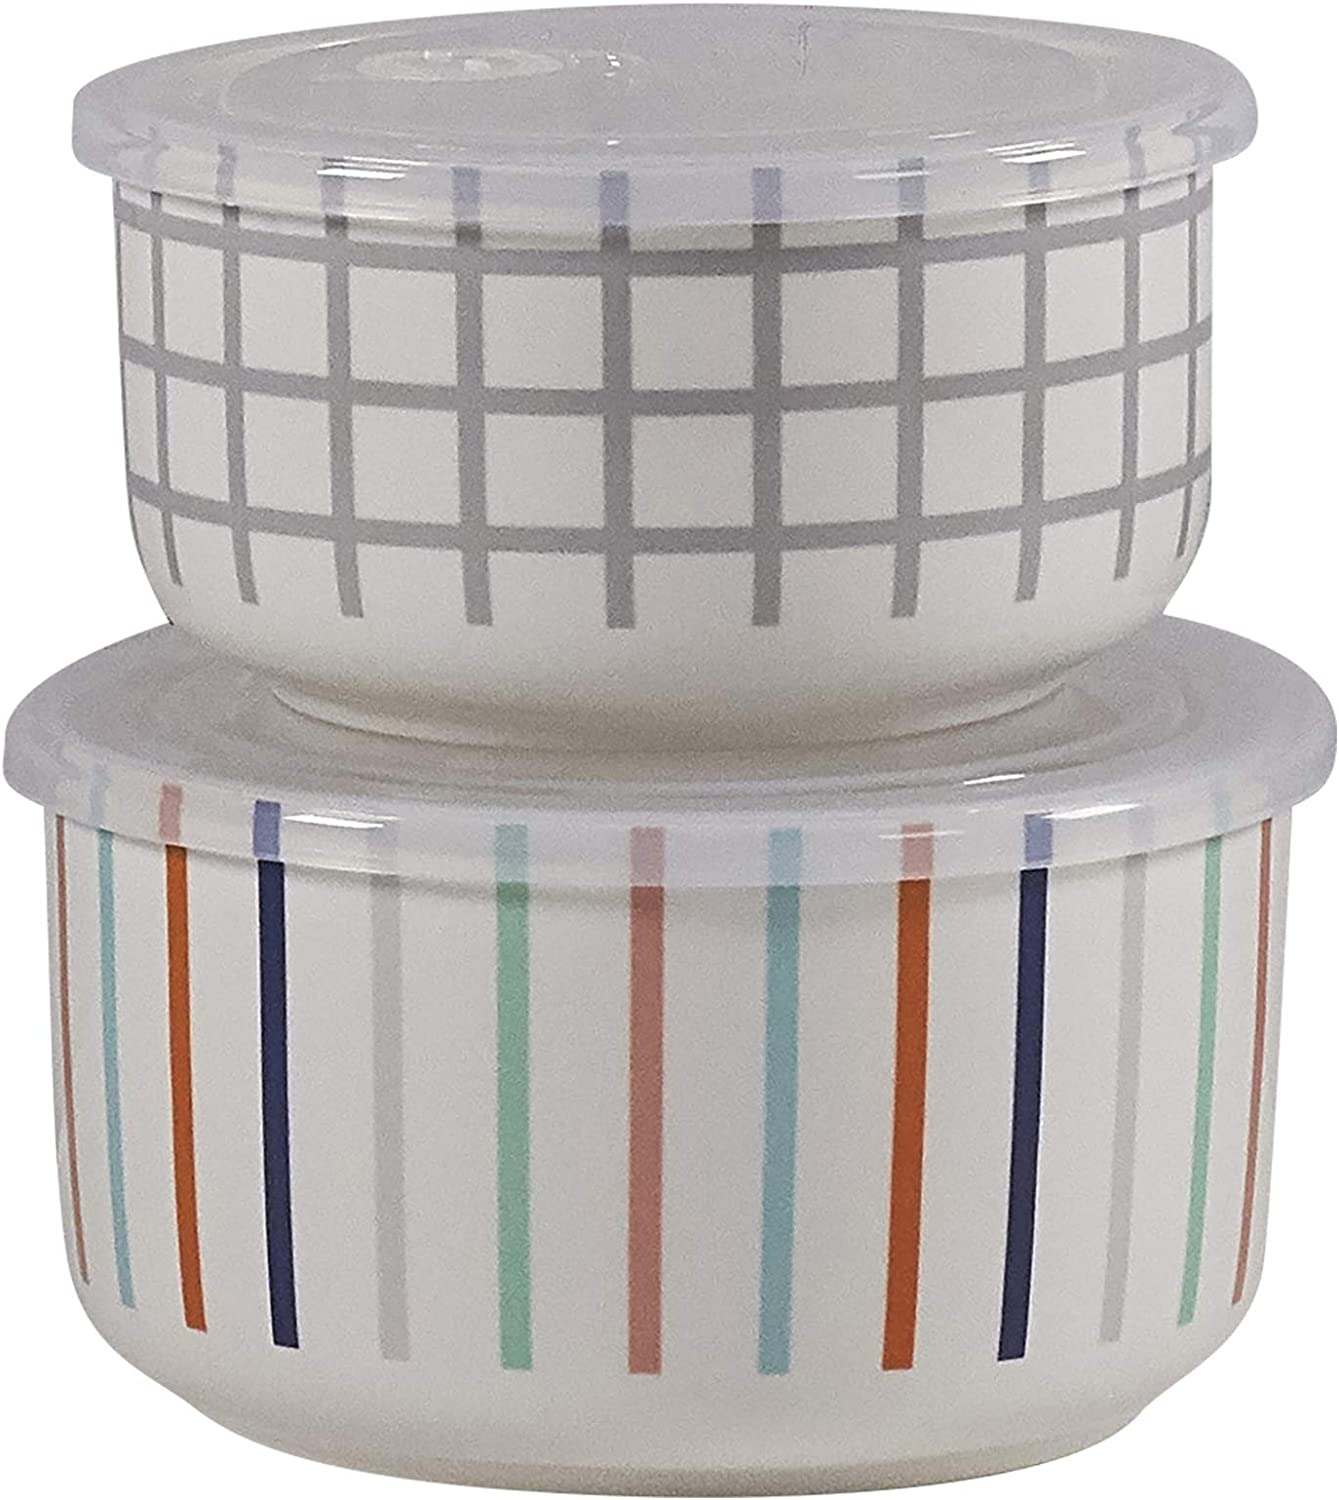 Set of 2 Microwaveable Bowls with Lids by CIROA | Stripe & Grid Design Microwave Me